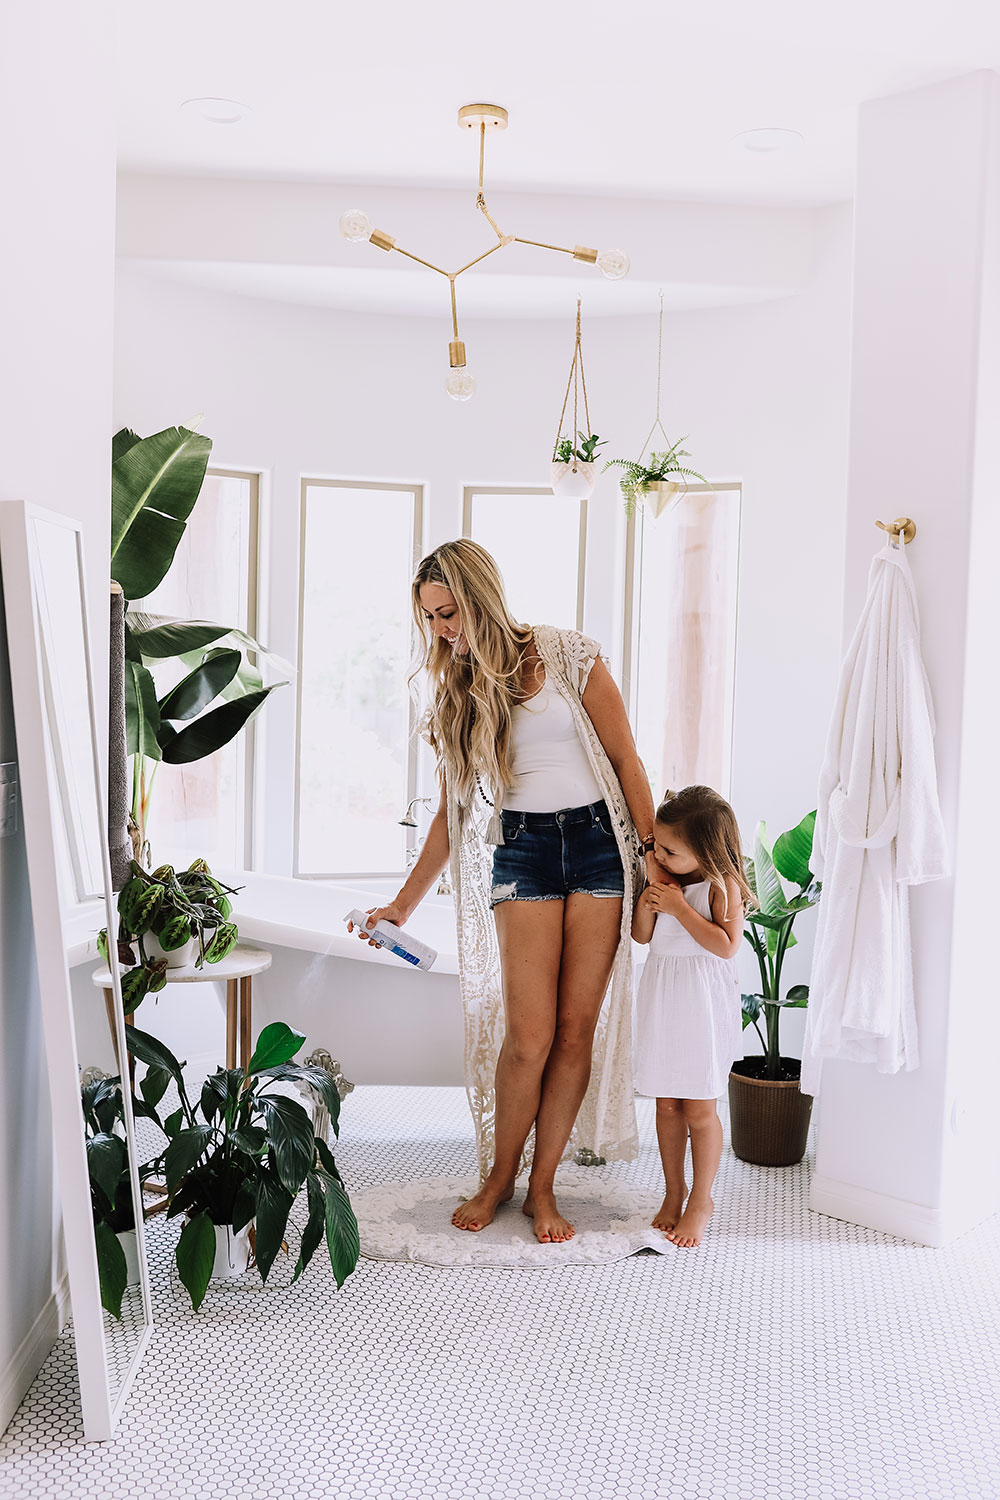 mama and mini, keeping the plants bug free with zevo instant action fly spray | thelovedesignedlife.com #bathroomgoals #masterbathroom #cleanhome #healthyhome #bestbugspray